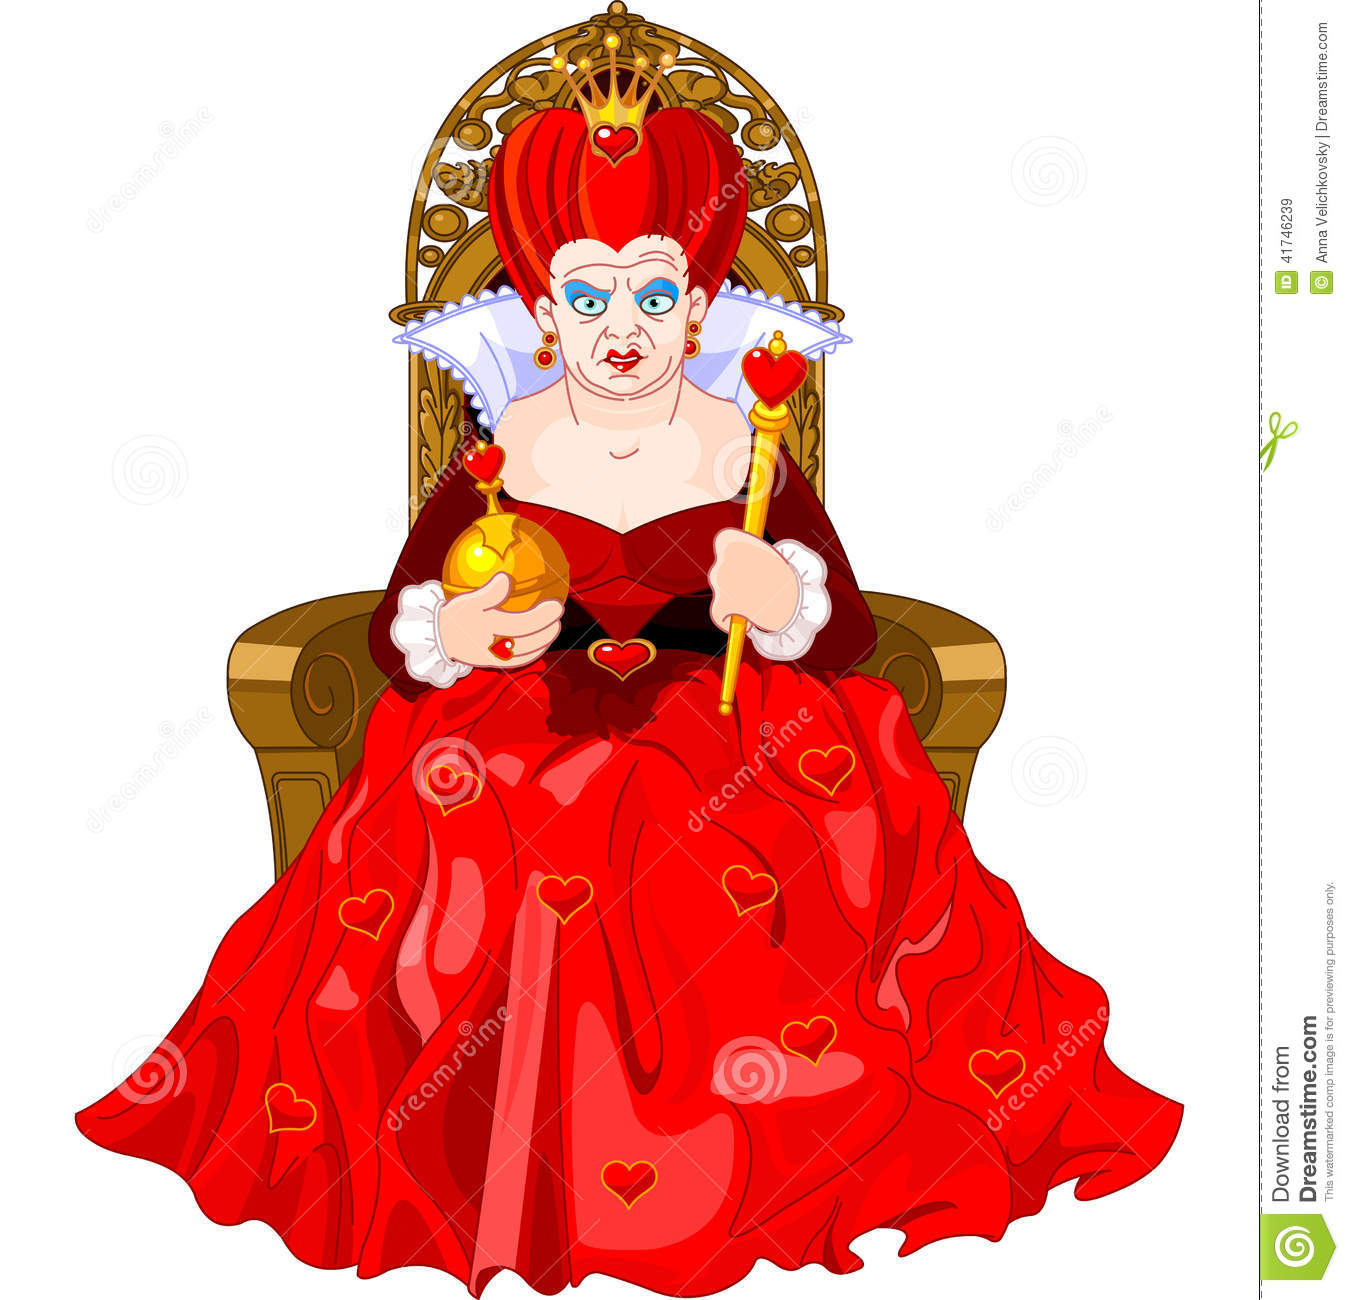 King clipart reyna. Queen transparent free for